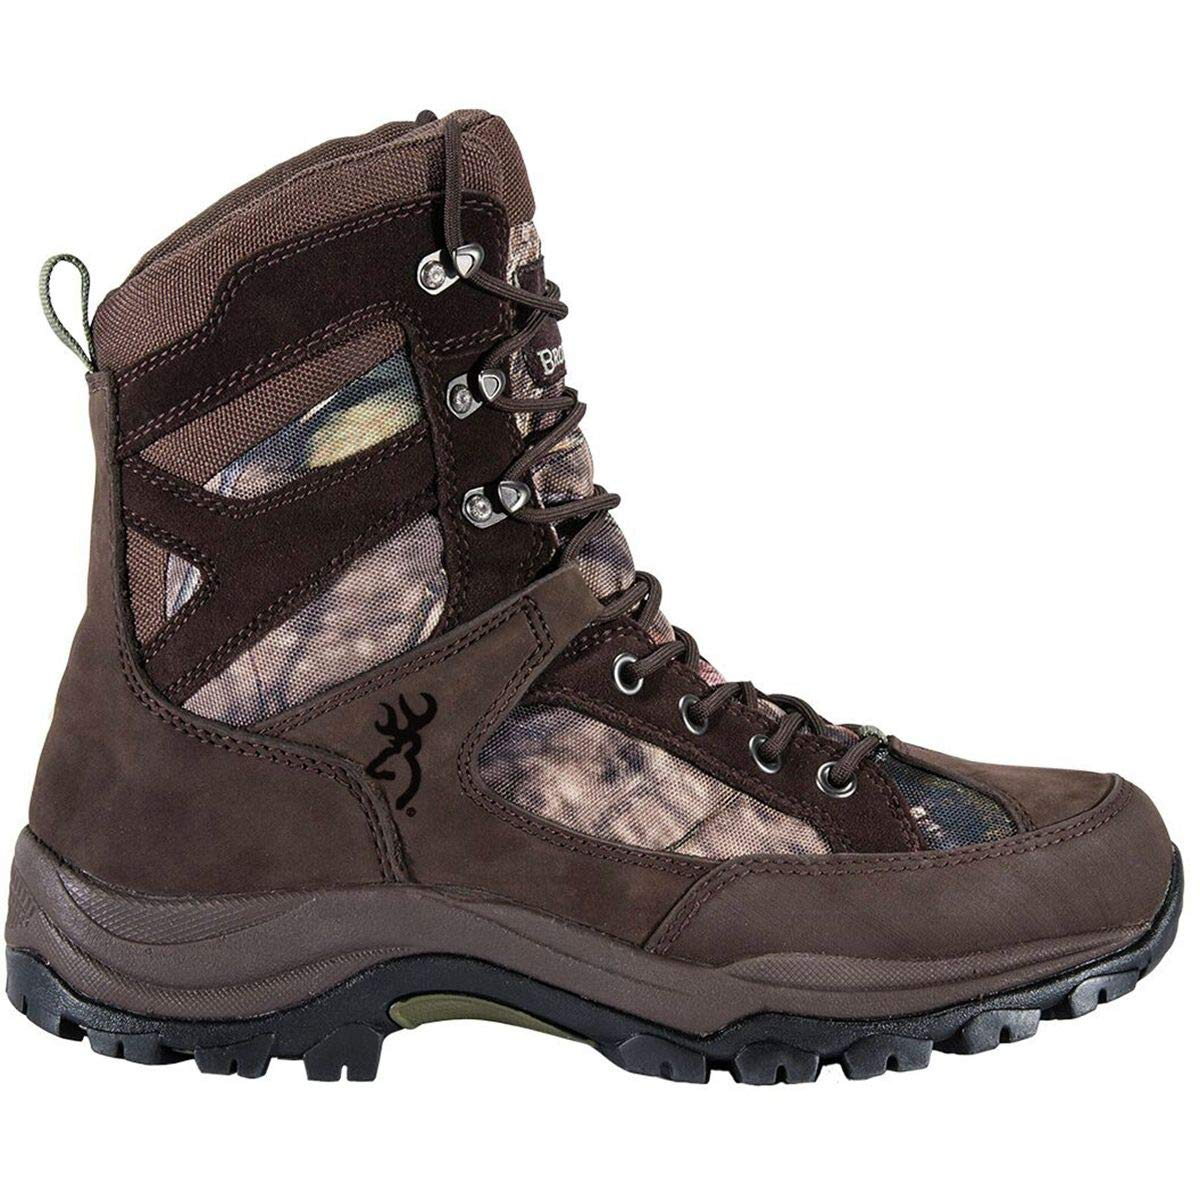 Browning Buck Pursuit 8in 400g Insulated Boot - Men's Bracken/Mossy Oak Country, 10.0